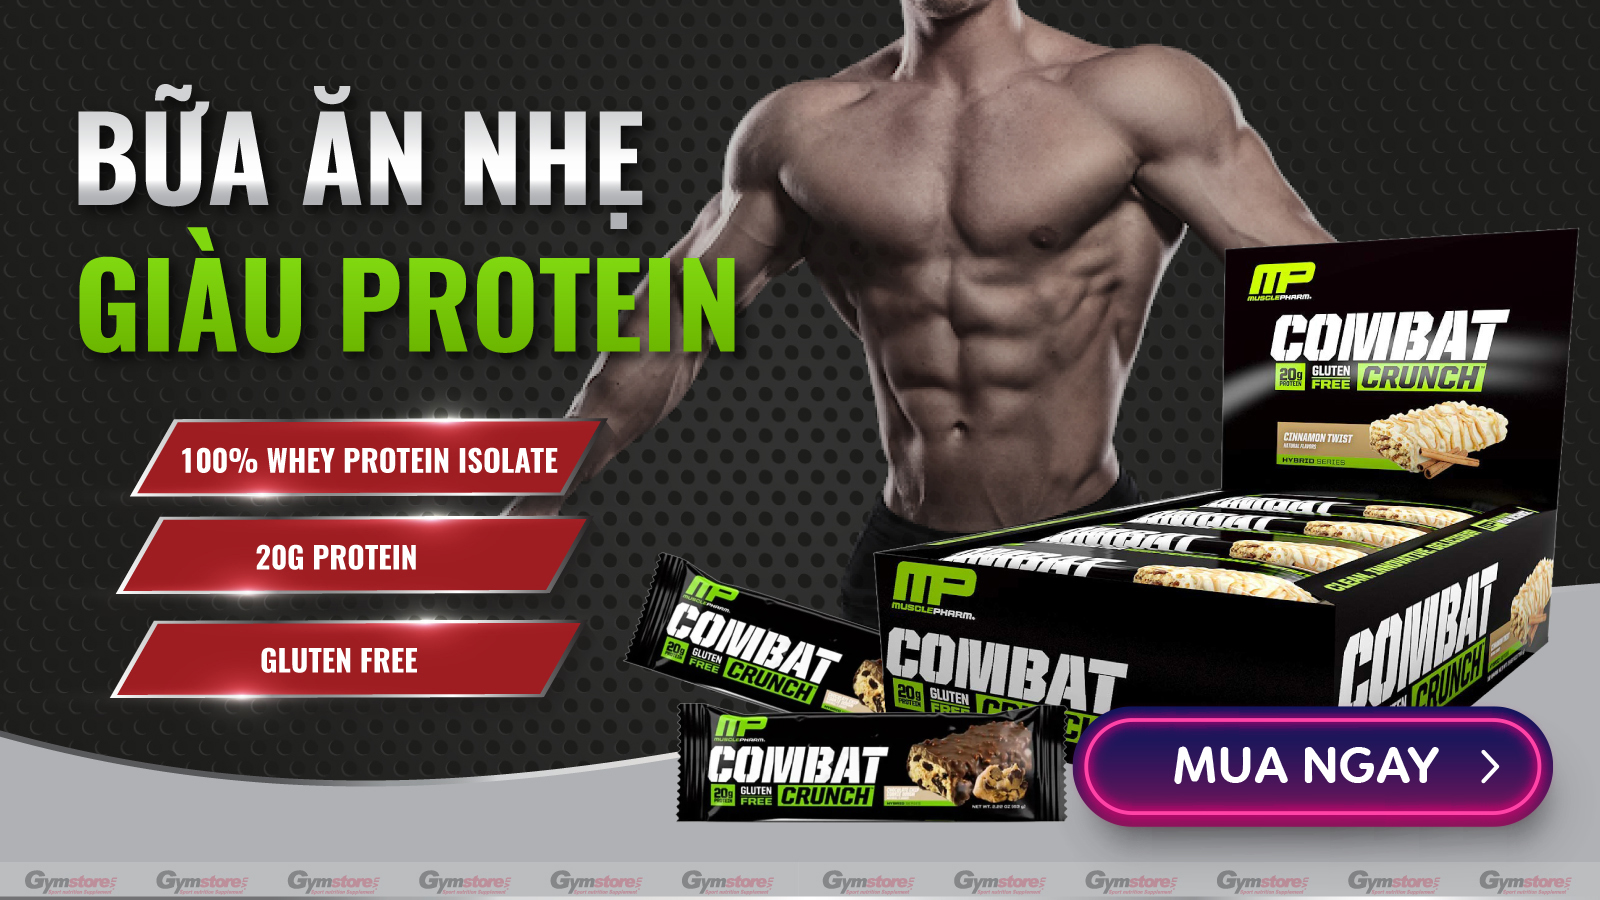 Muscle-Pharm-Combat-Crunch-Protein-Bar-Gymstore